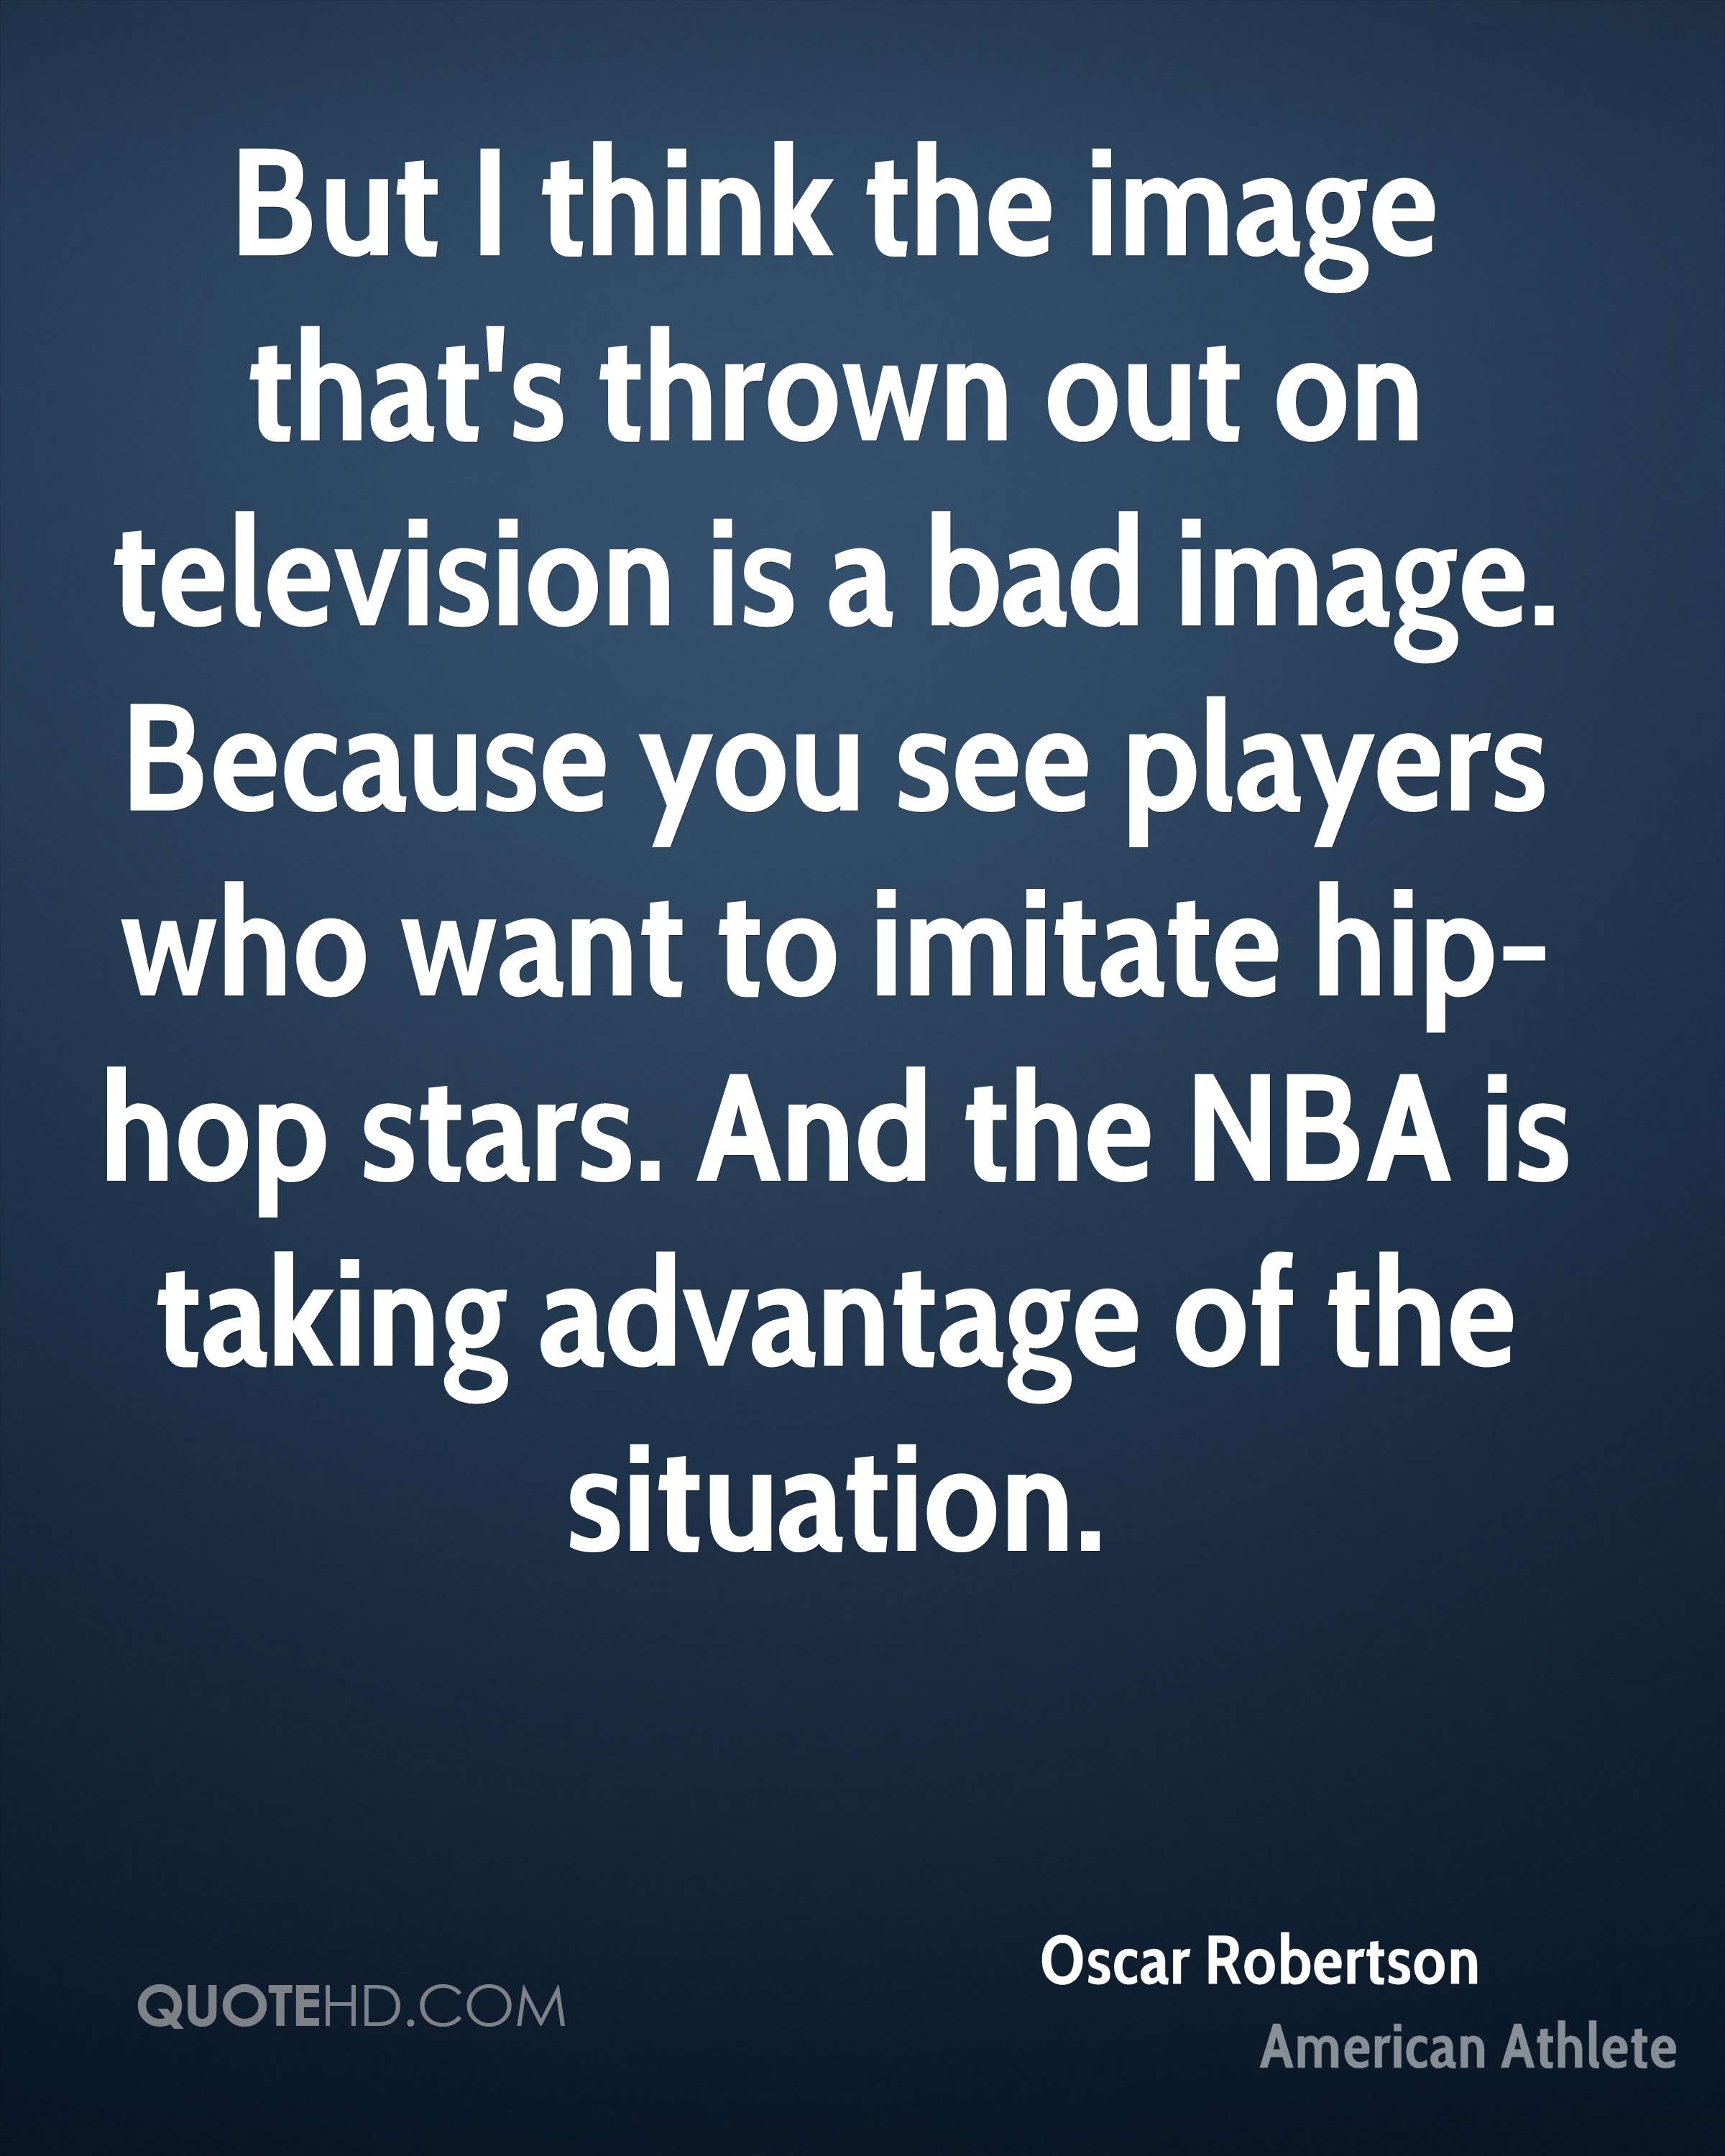 But I think the image that's thrown out on television is a bad image. Because you see players who want to imitate hip-hop stars. And the NBA is taking advantage of the situation.